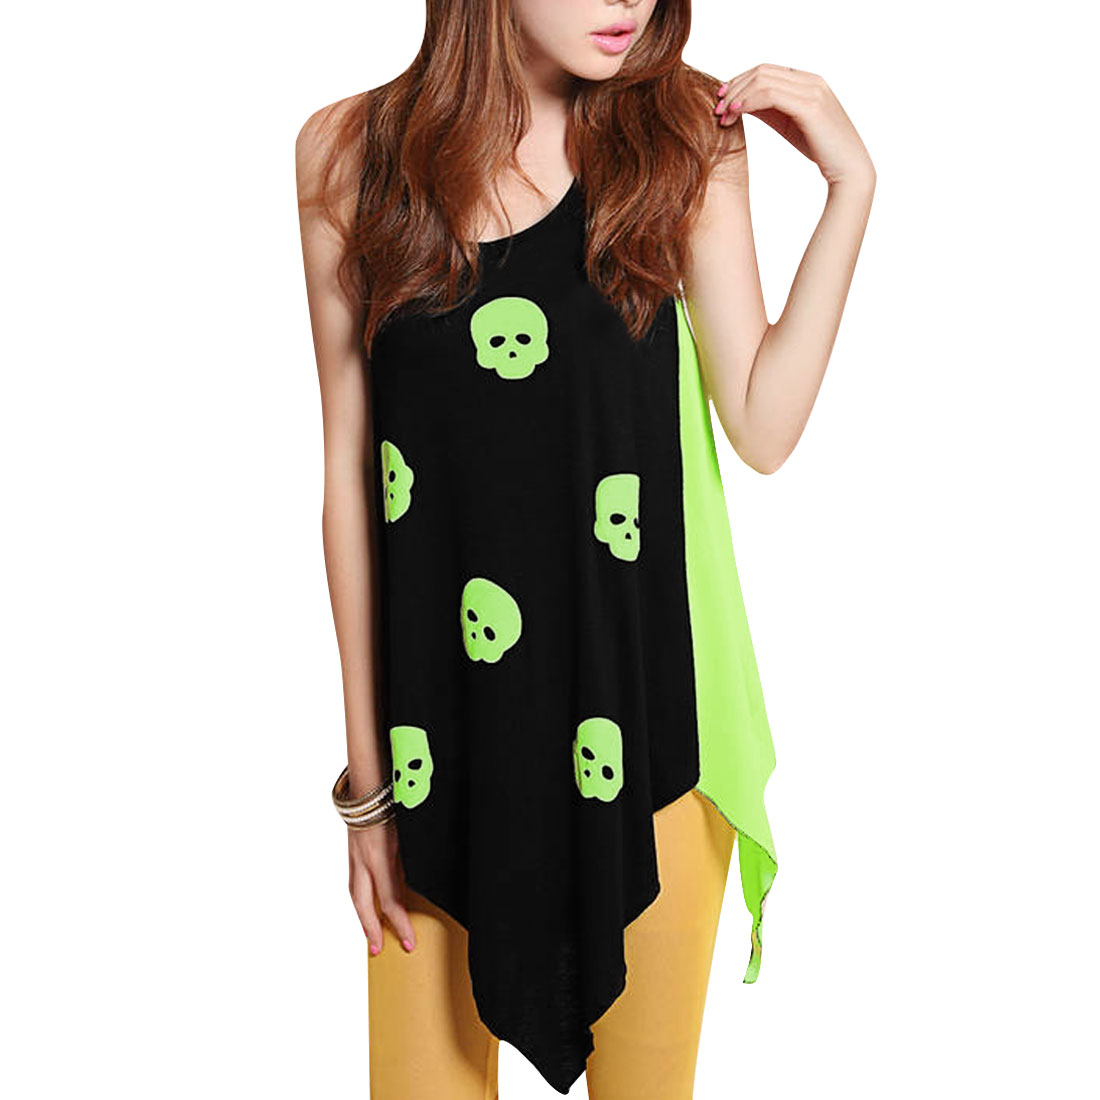 Lady Green Sleeveless High Low Hem Stretchy Skull Print Tank Top XS